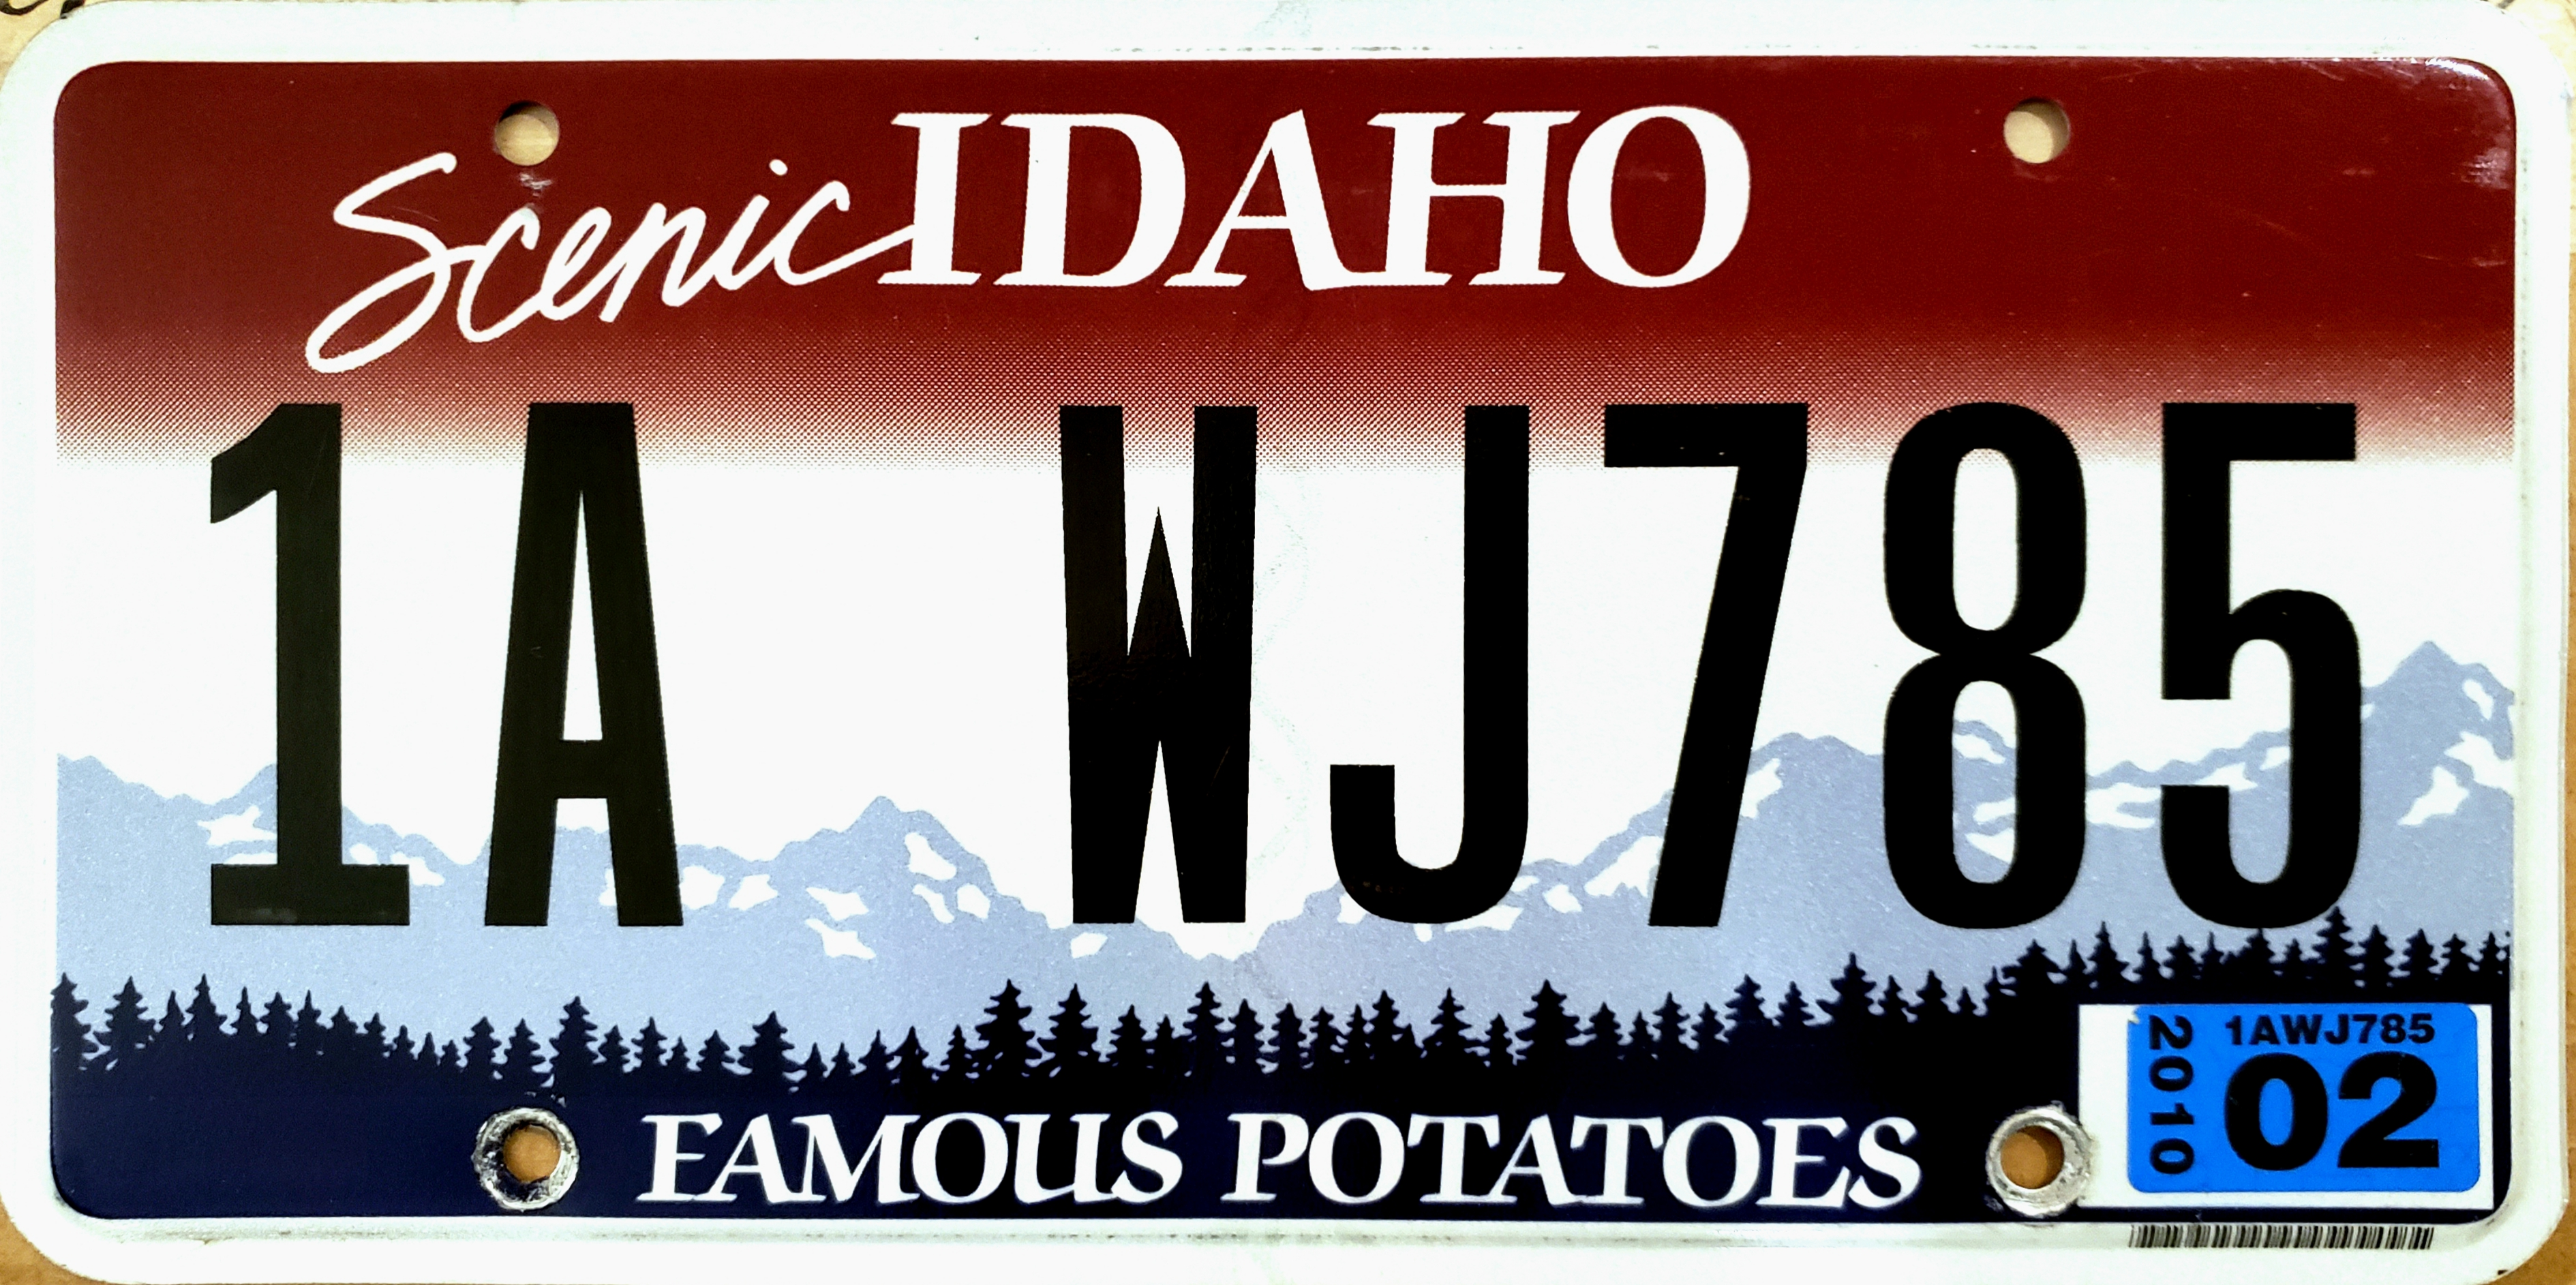 United States license plate designs and serial formats